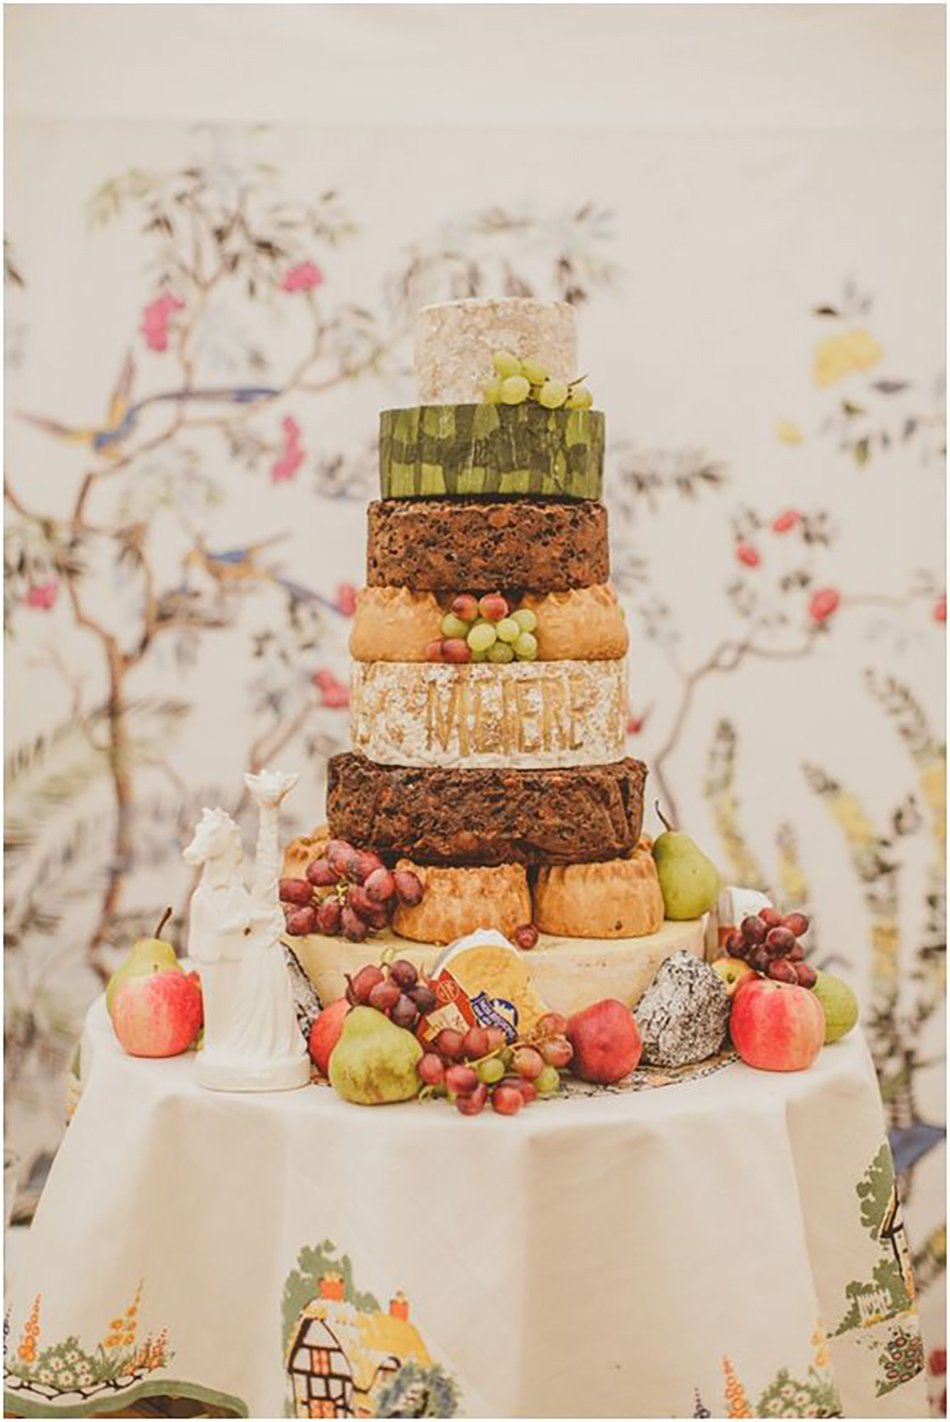 Wedding fakes: go for these savoury options instead of sweet